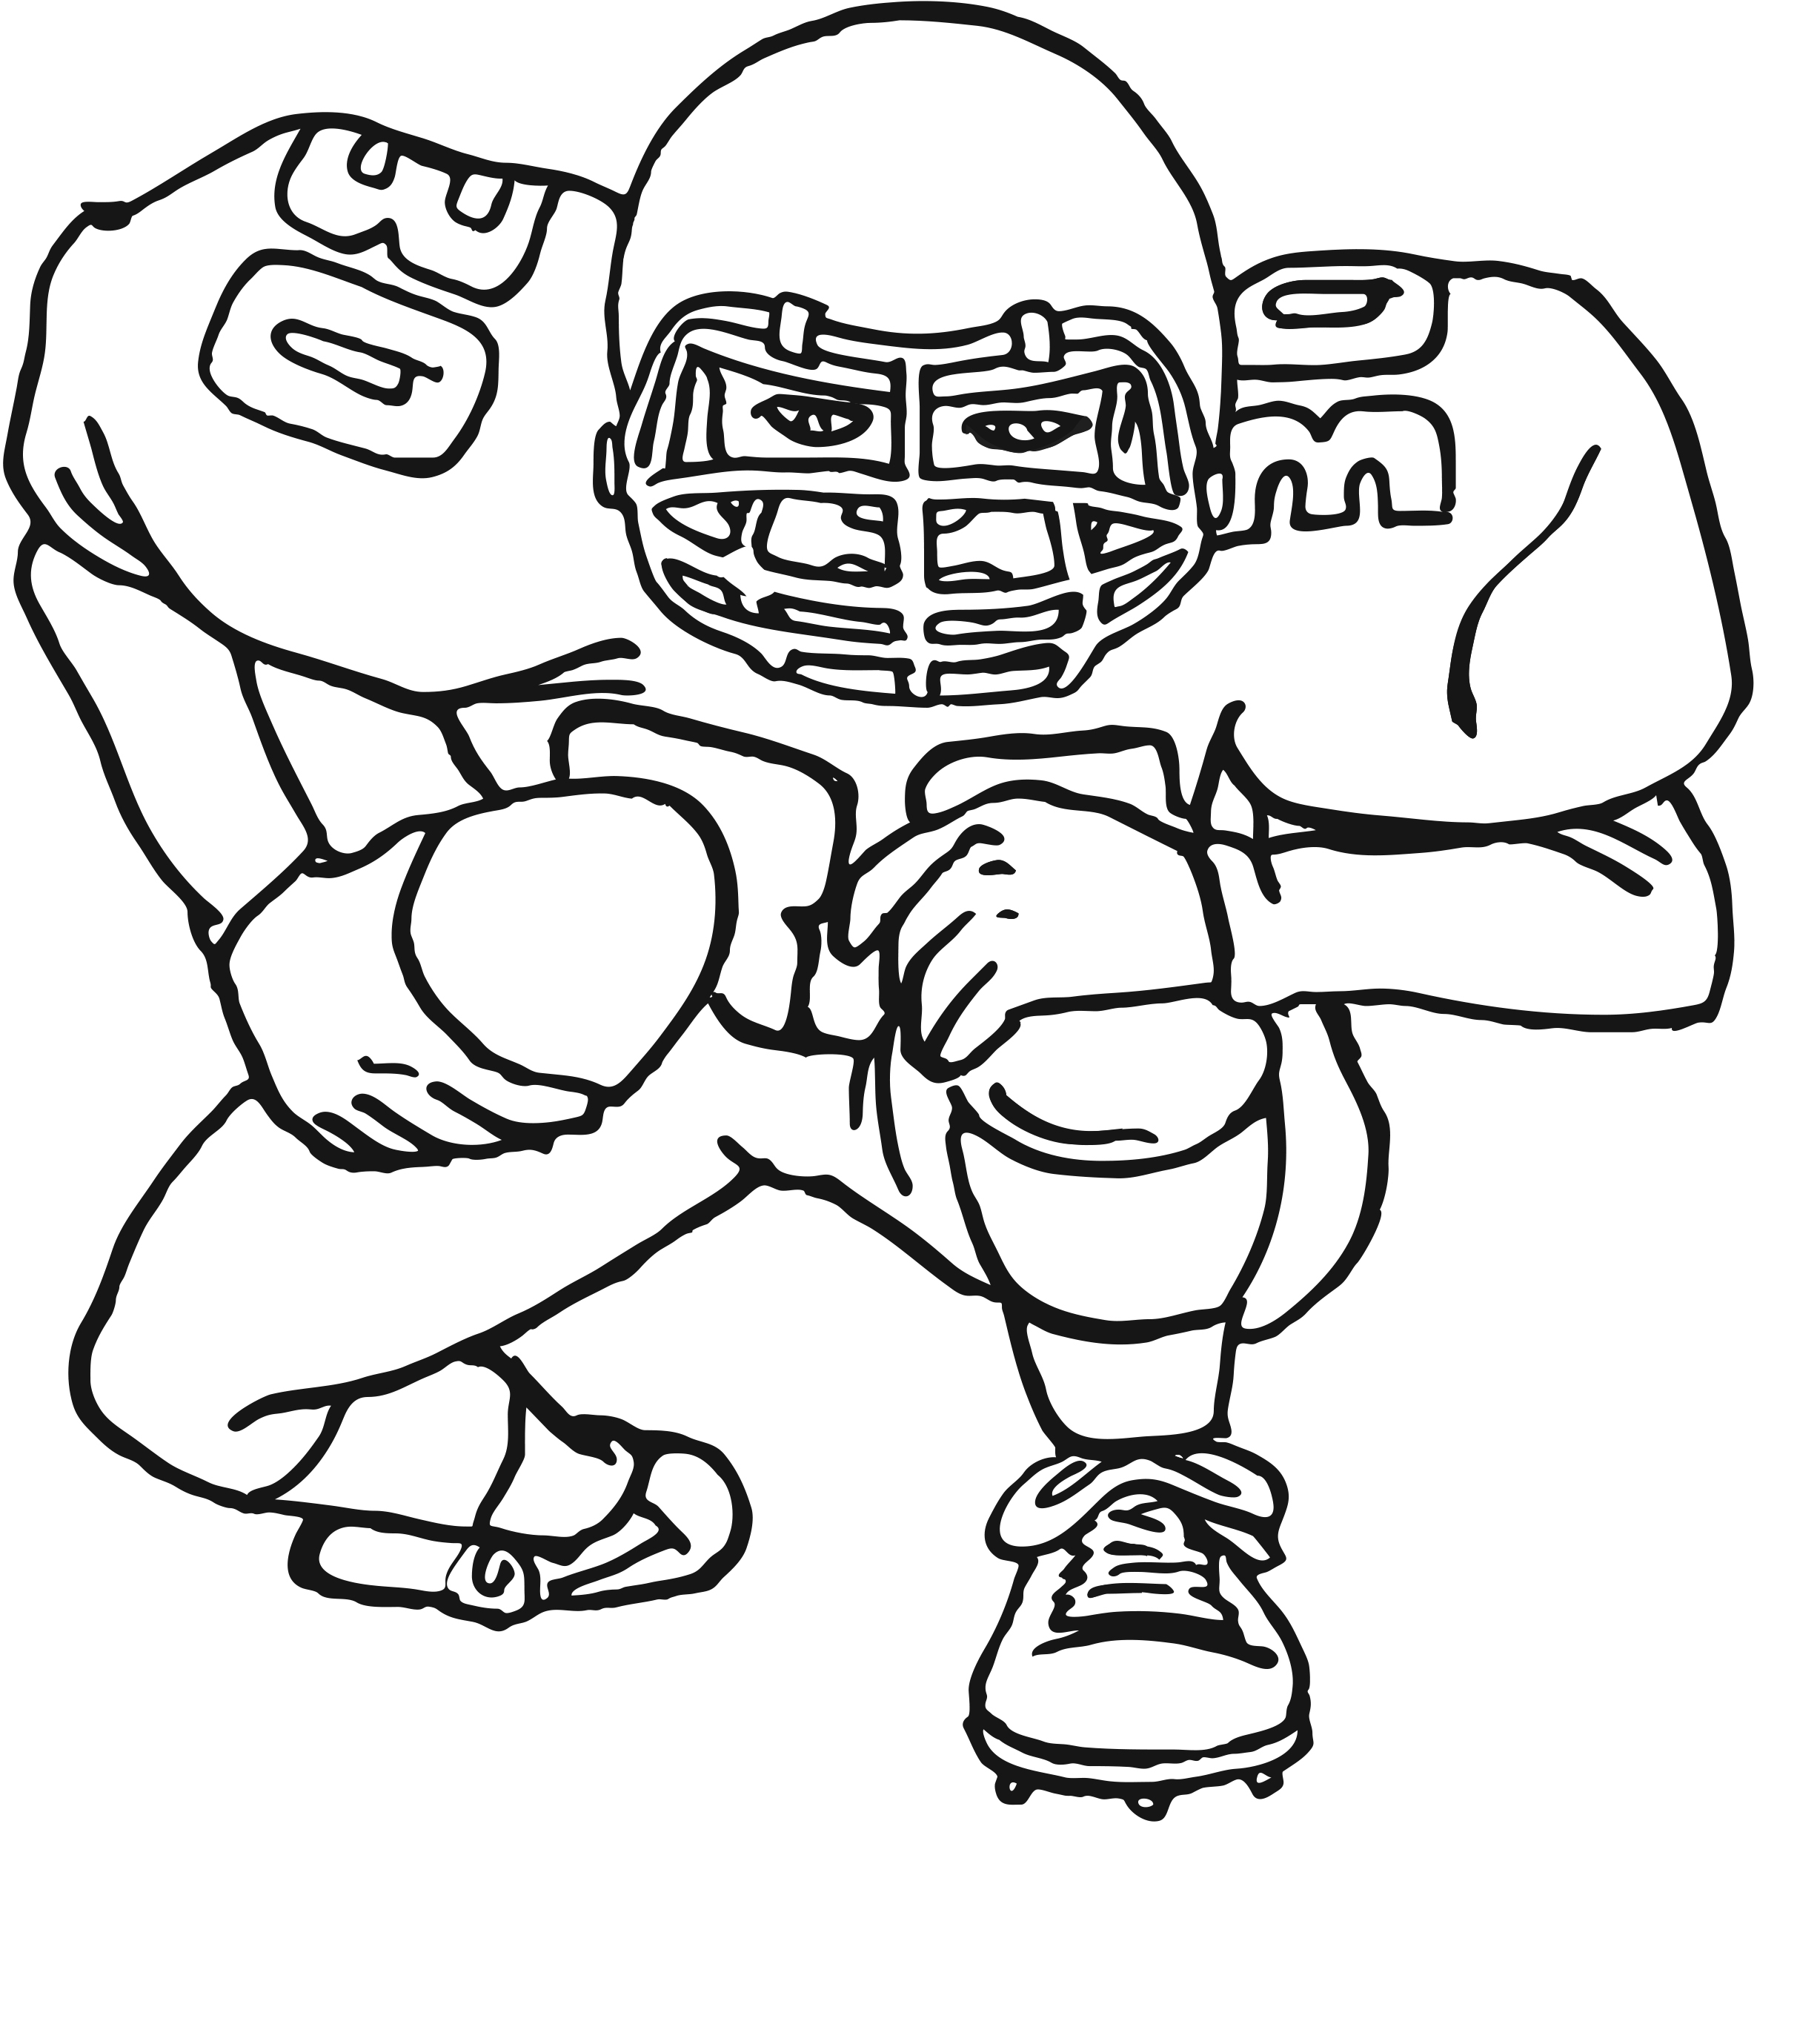 21+ Awesome Image of Football Coloring Pages